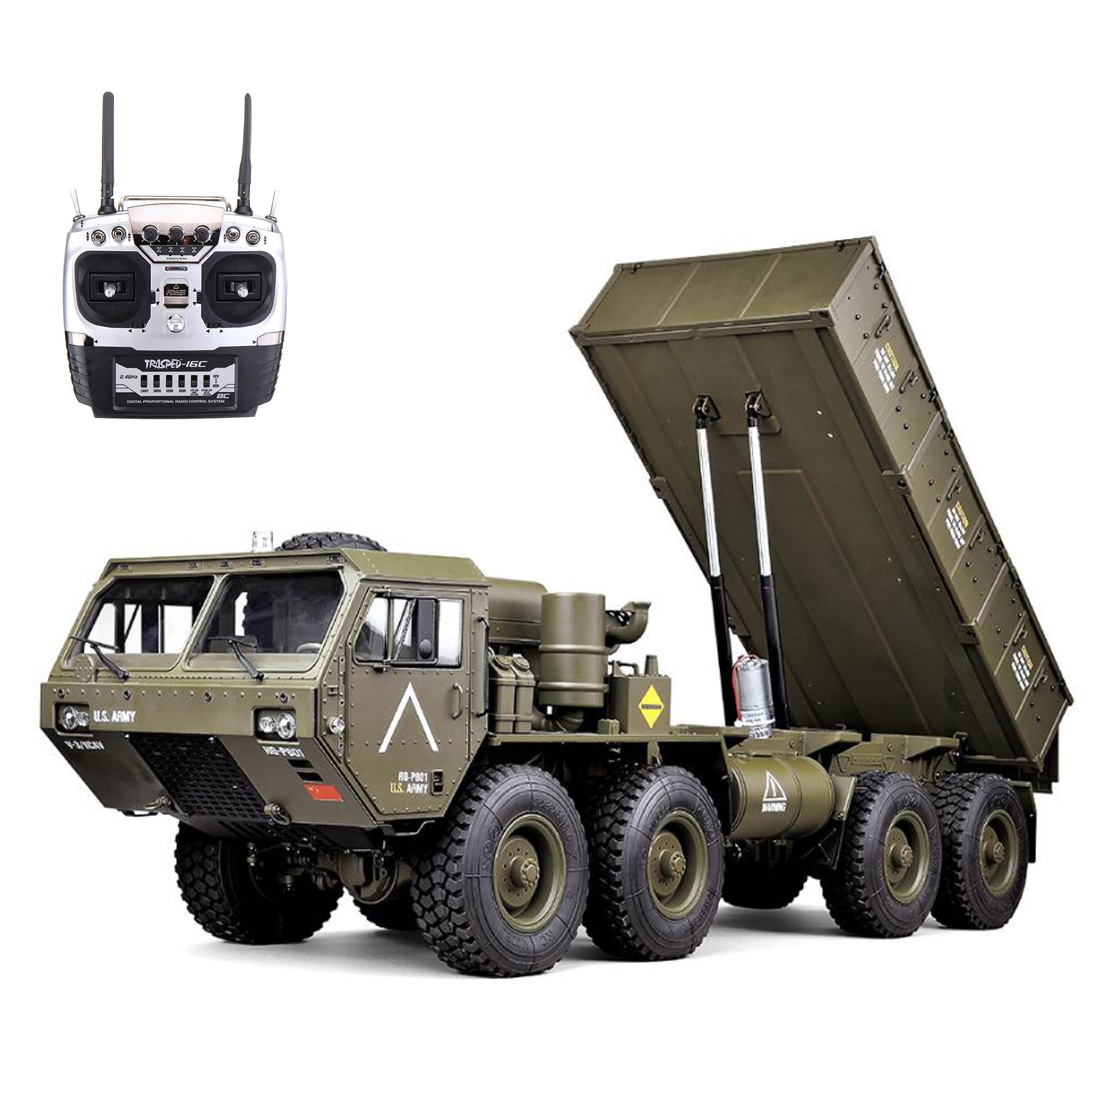 HG-P803A 1/12 2.4G 8 X 8 RC Car Dump Truck Military Truck With Light Sound Function Without Battery Charger - Upgraded Version